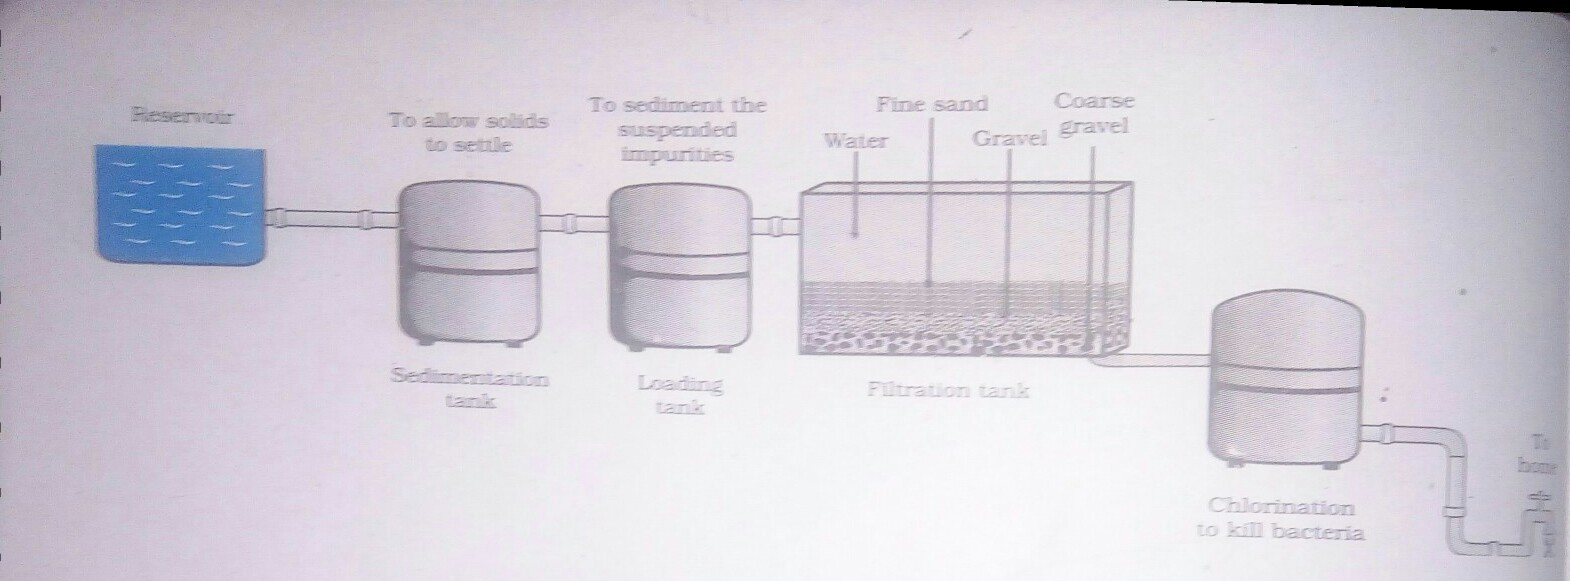 Draw A Flow Diagram To Show The Water Purification System In Water